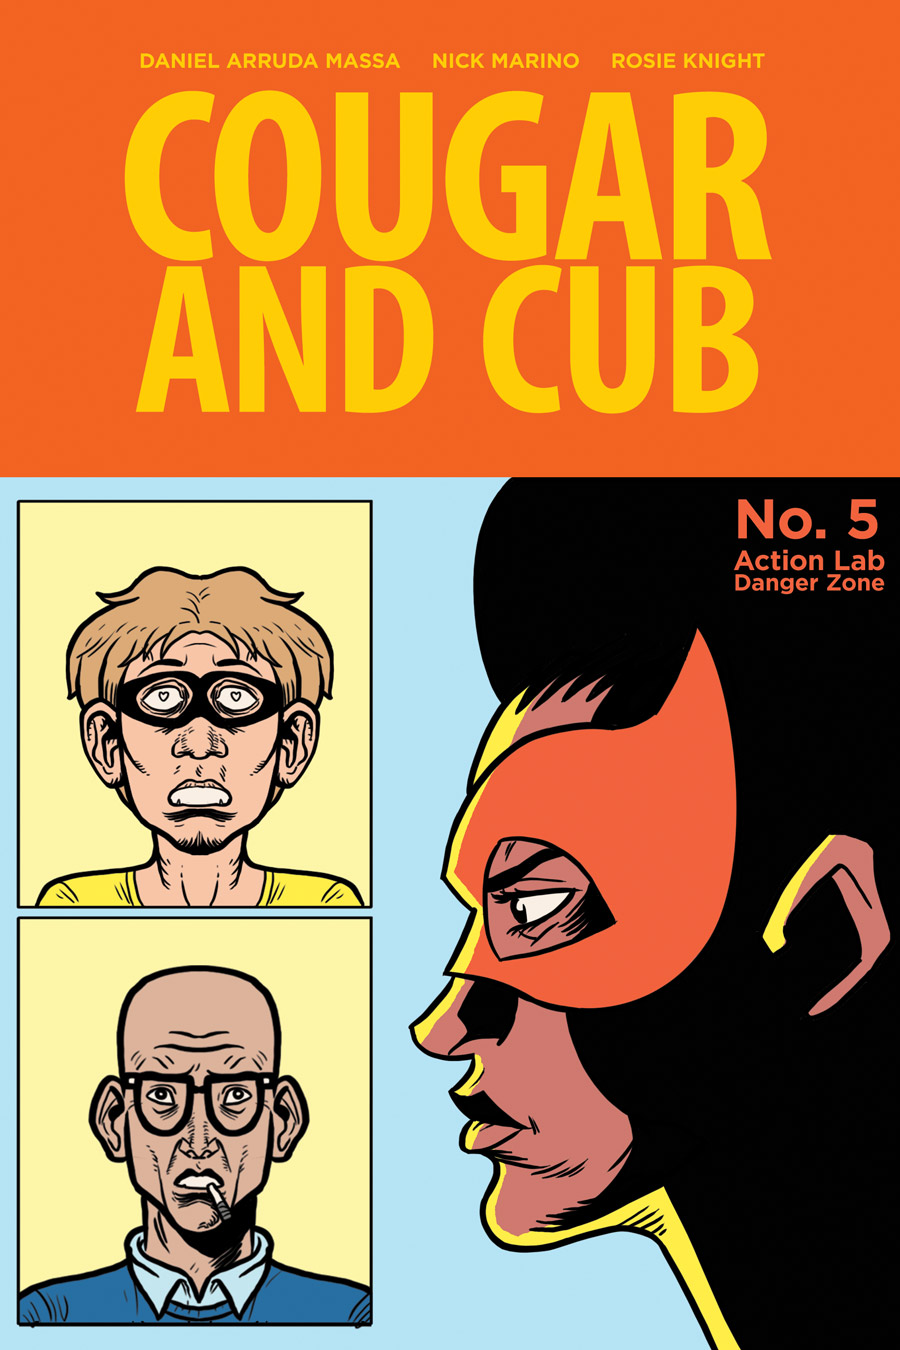 Cougar and Cub #5 flashback cover